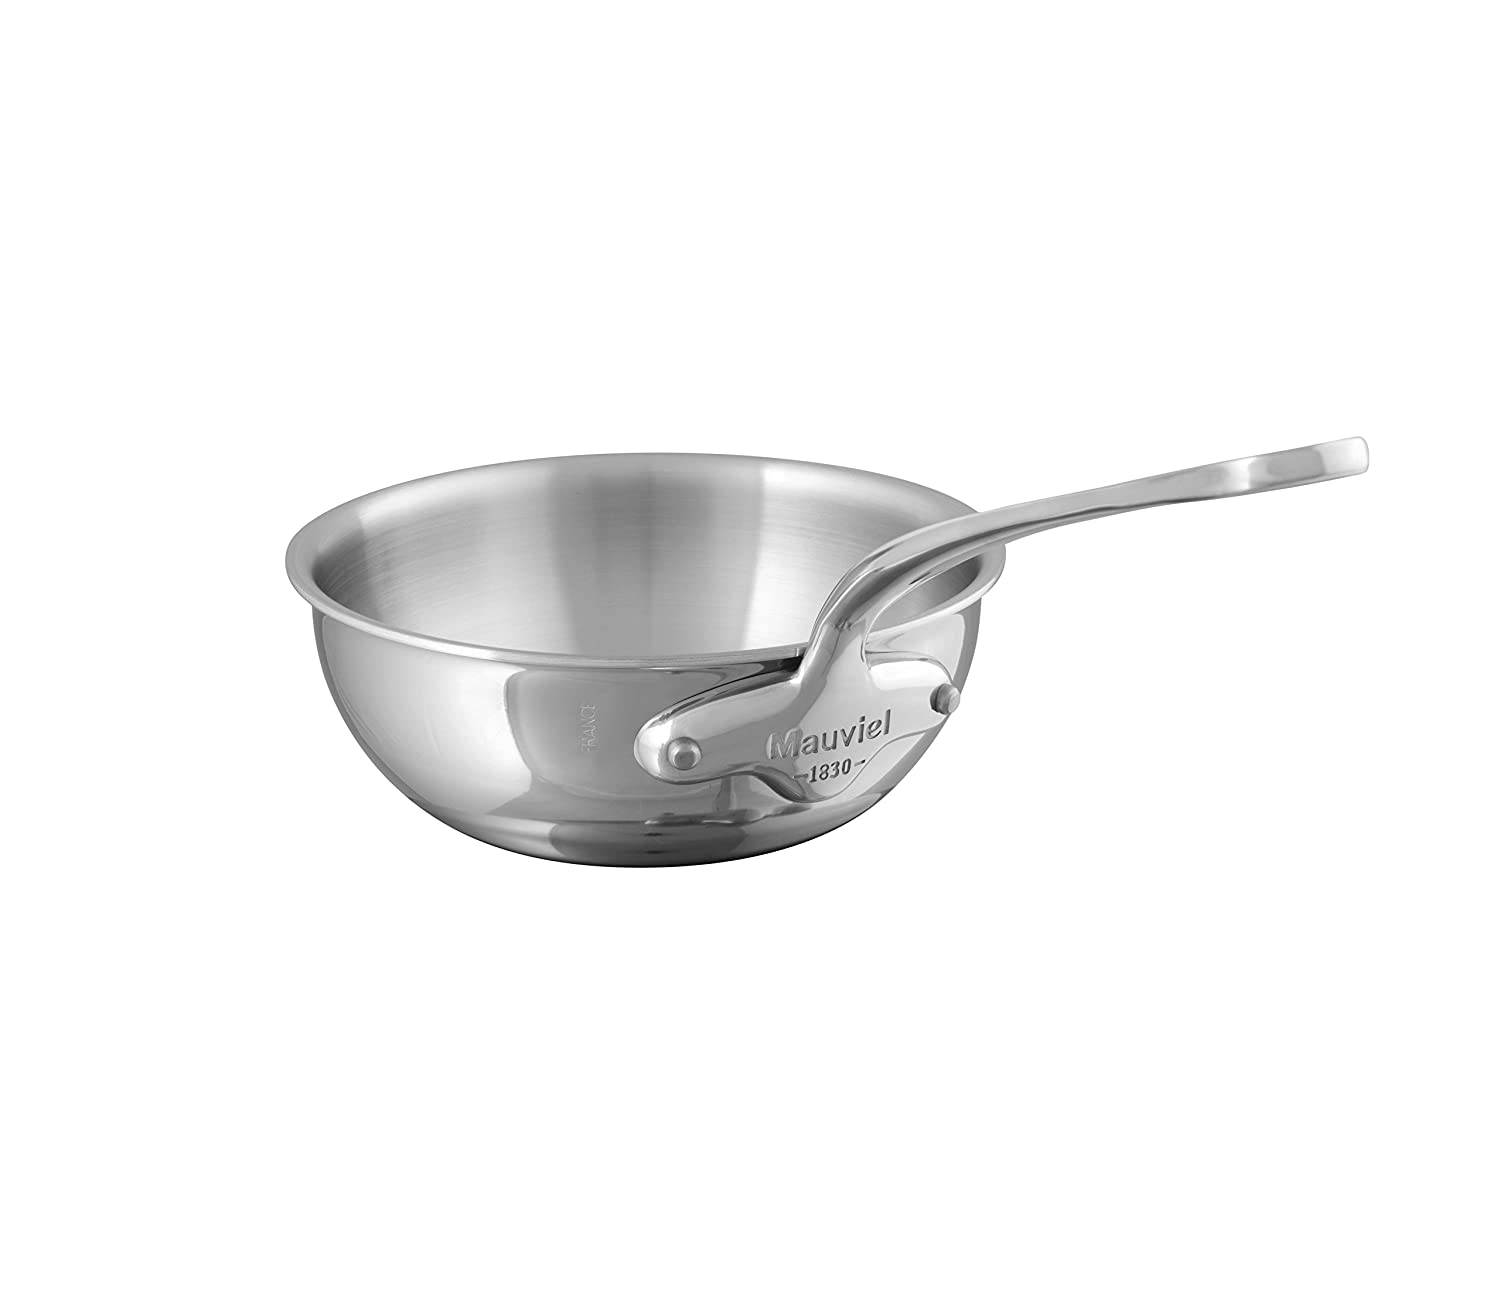 Mauviel 16CM Curved Splayed Saute MCook